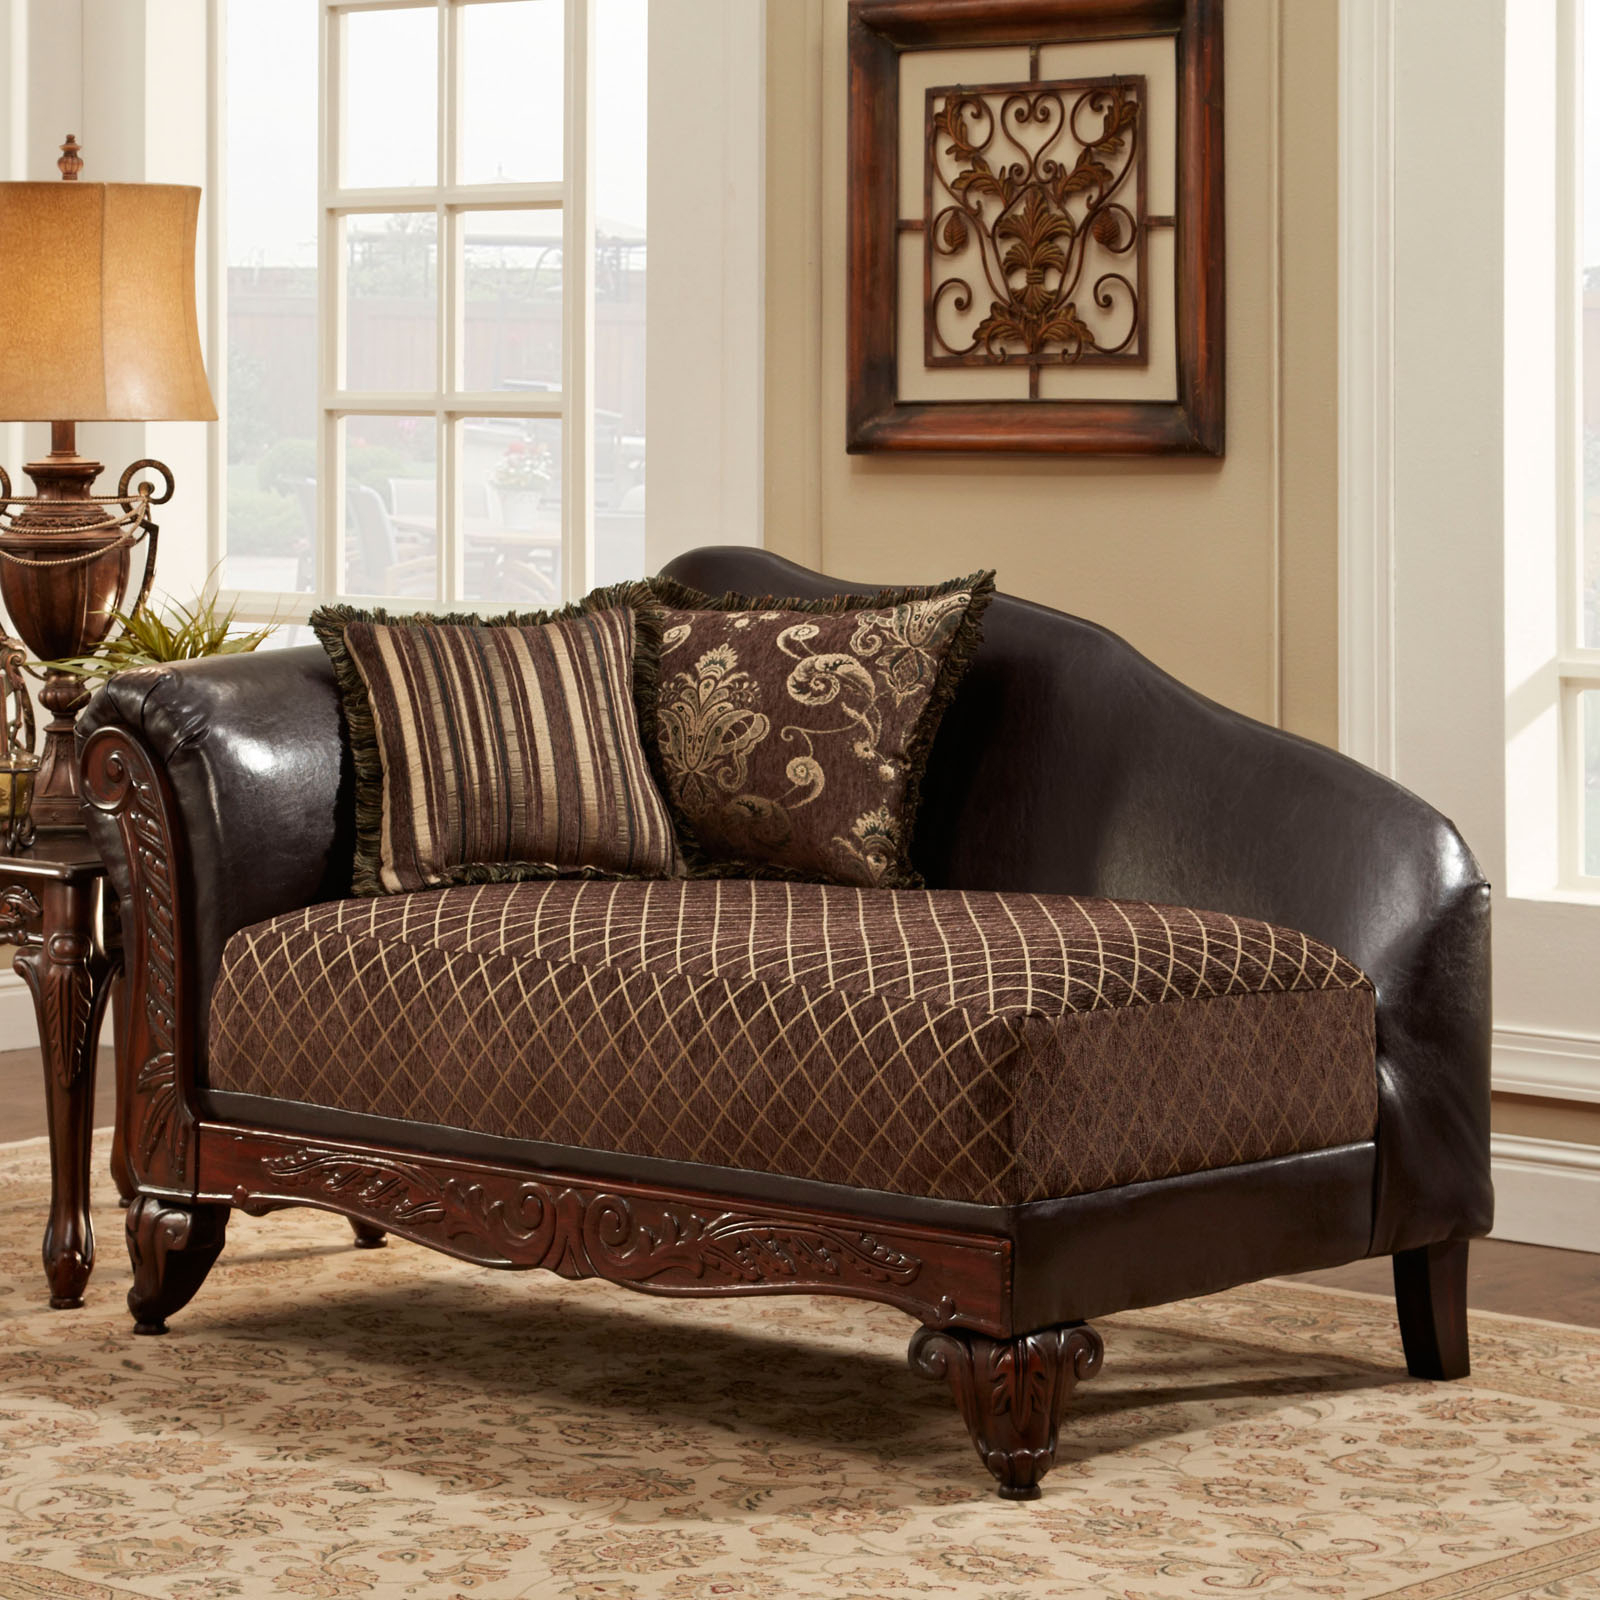 Chelsea Home Amelia Upholstered Chaise – Indoor Chaise For Sofa Chairs For Bedroom (View 5 of 15)